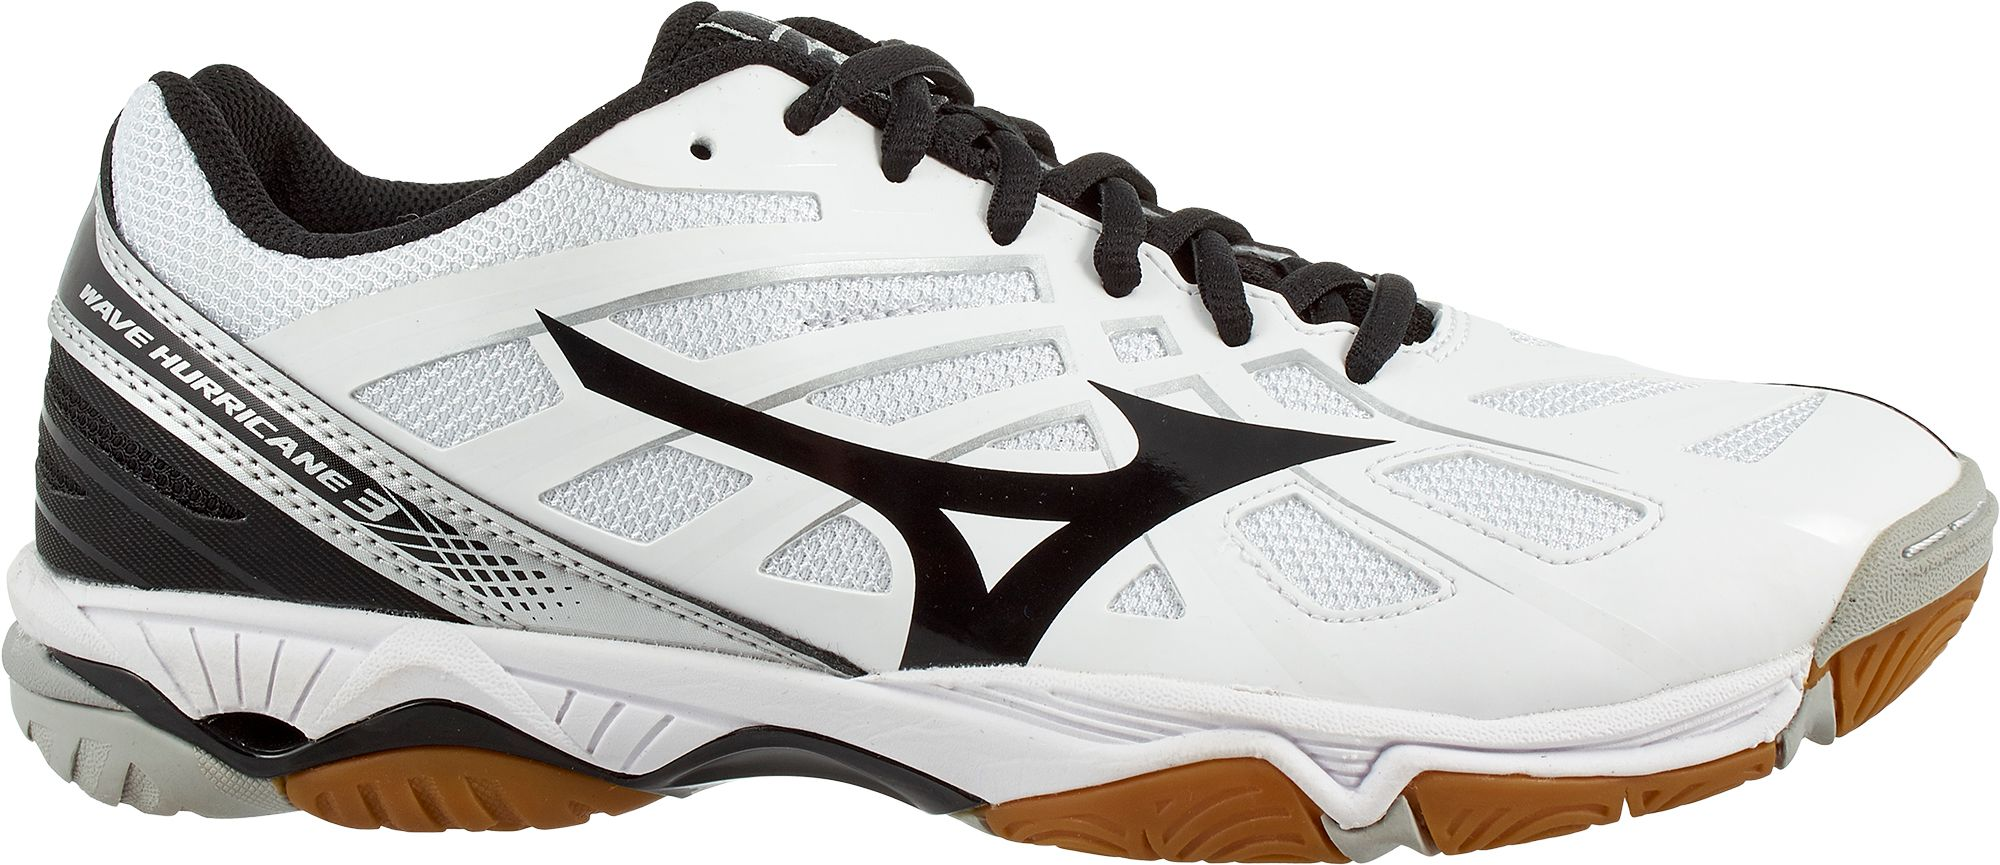 mizuno womens volleyball shoes size 8 x 3 inch high uk navy